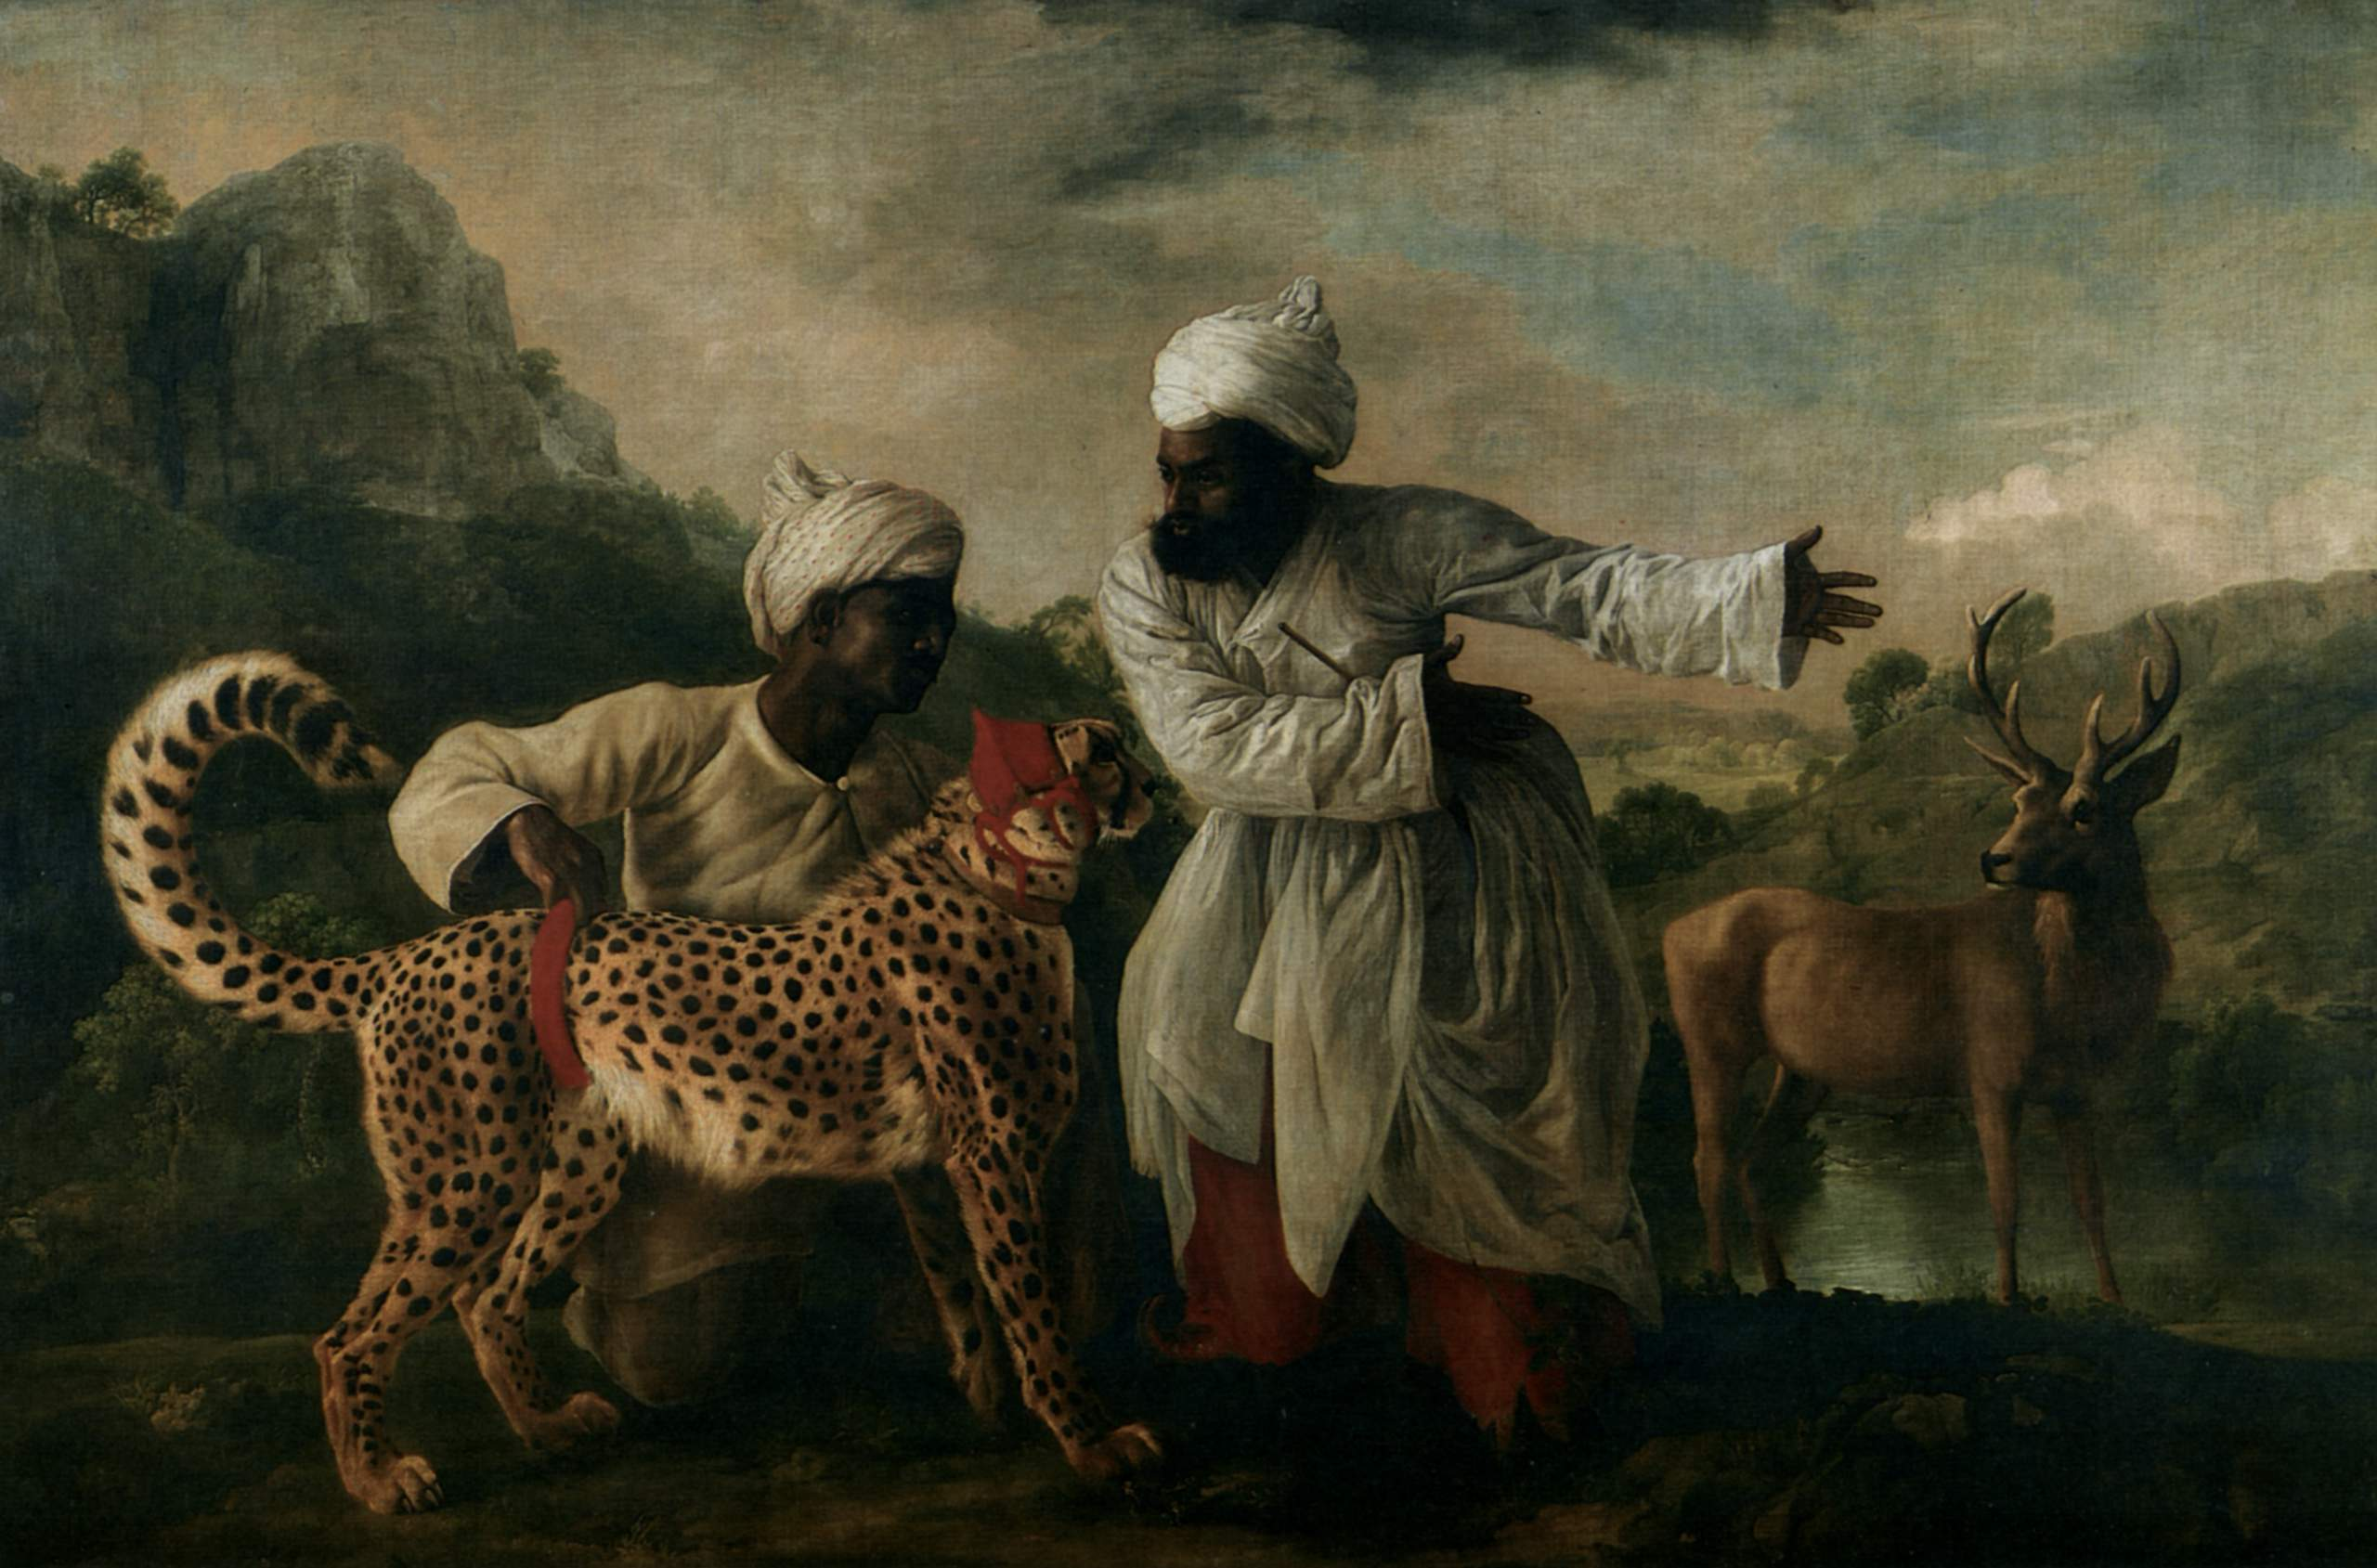 http://uploads0.wikiart.org/images/george-stubbs/cheetah-with-two-indian-servants-and-a-deer.jpg